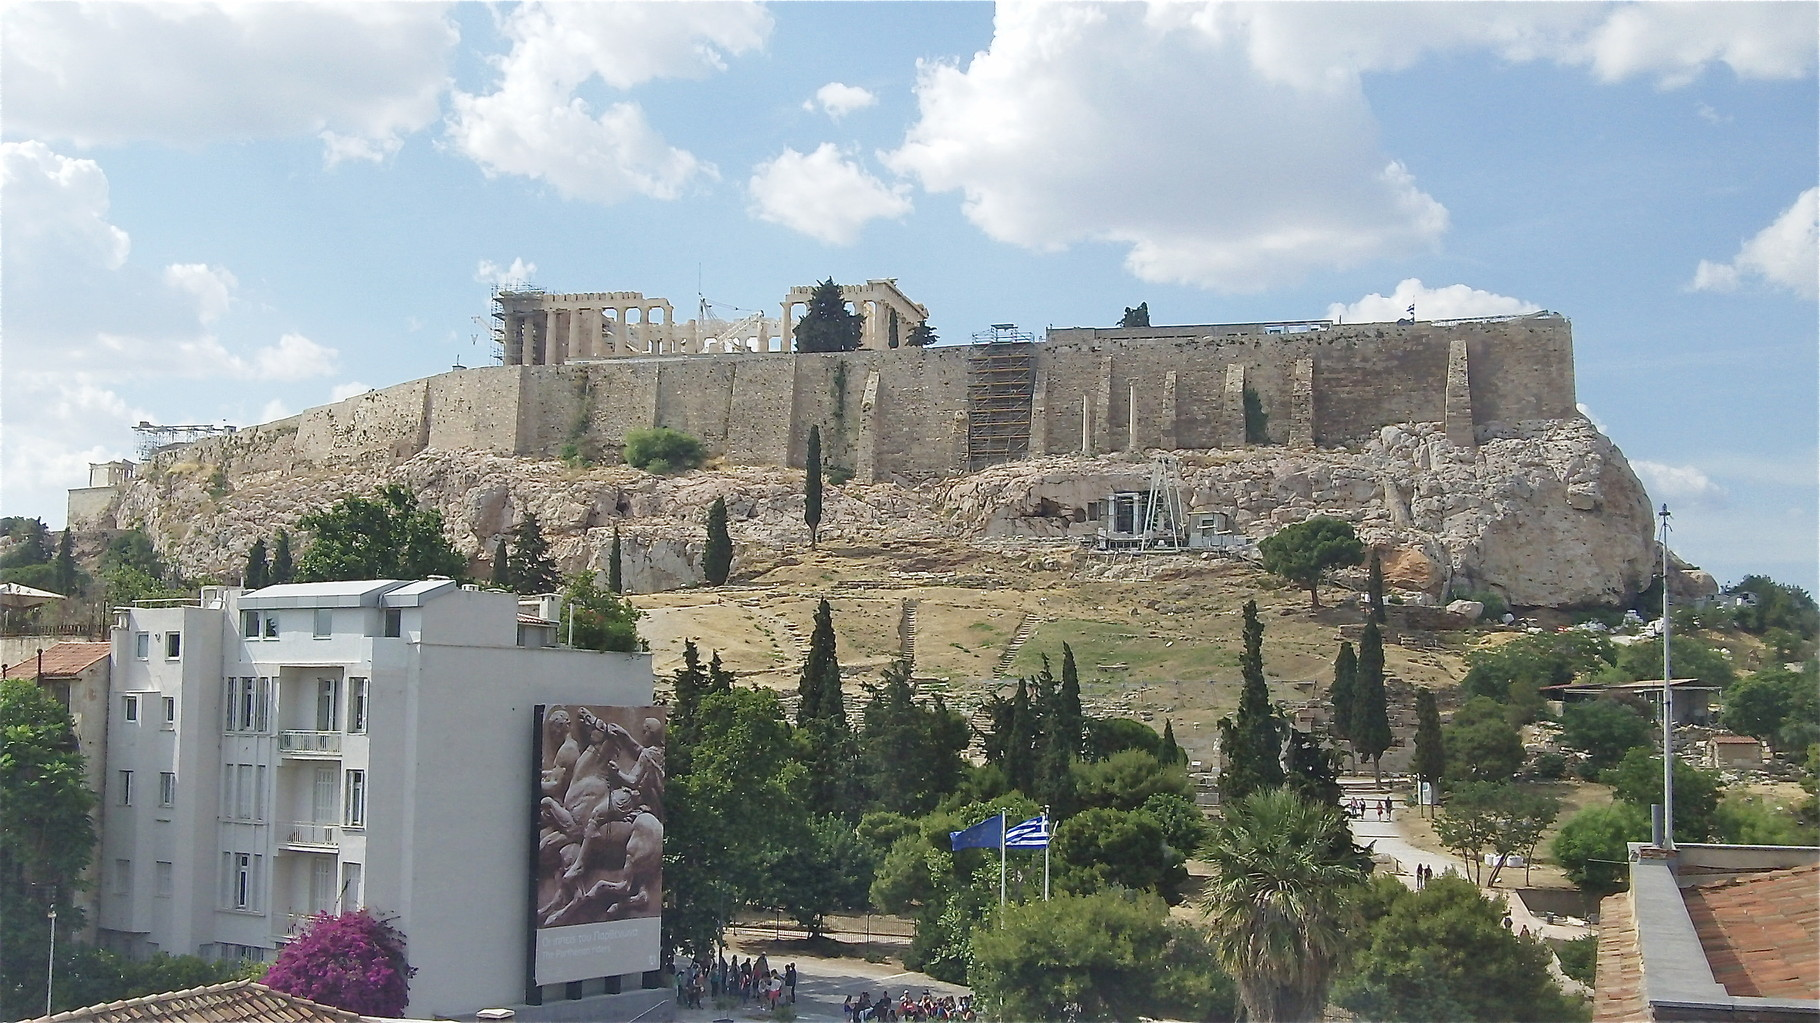 View of the Acropolis from the museum below